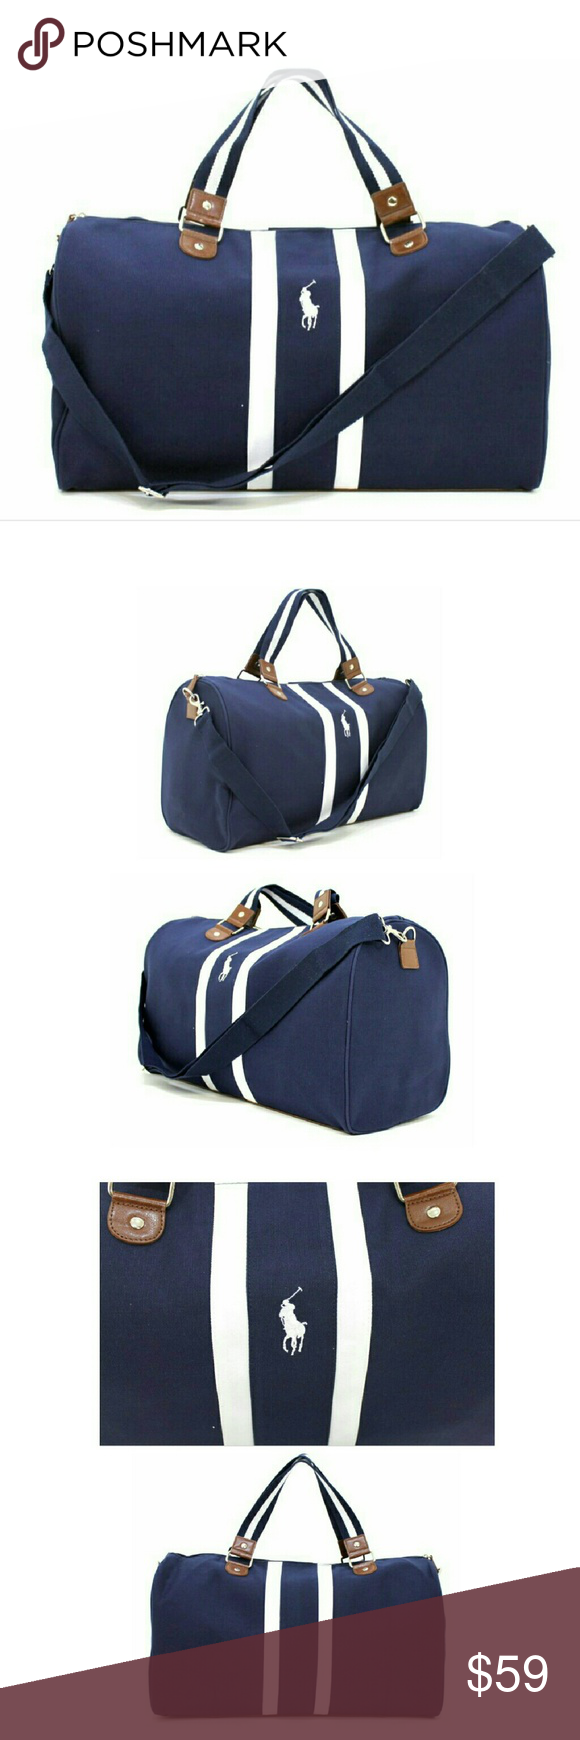 Ralph Lauren Polo Blue Navy White New Weekend Bag New Ralph Lauren Polo  Dark Navy Blue White Weekend Travel Gym Holdall Bag Sporty, stylish and  masculine, ... c7e86f86e10